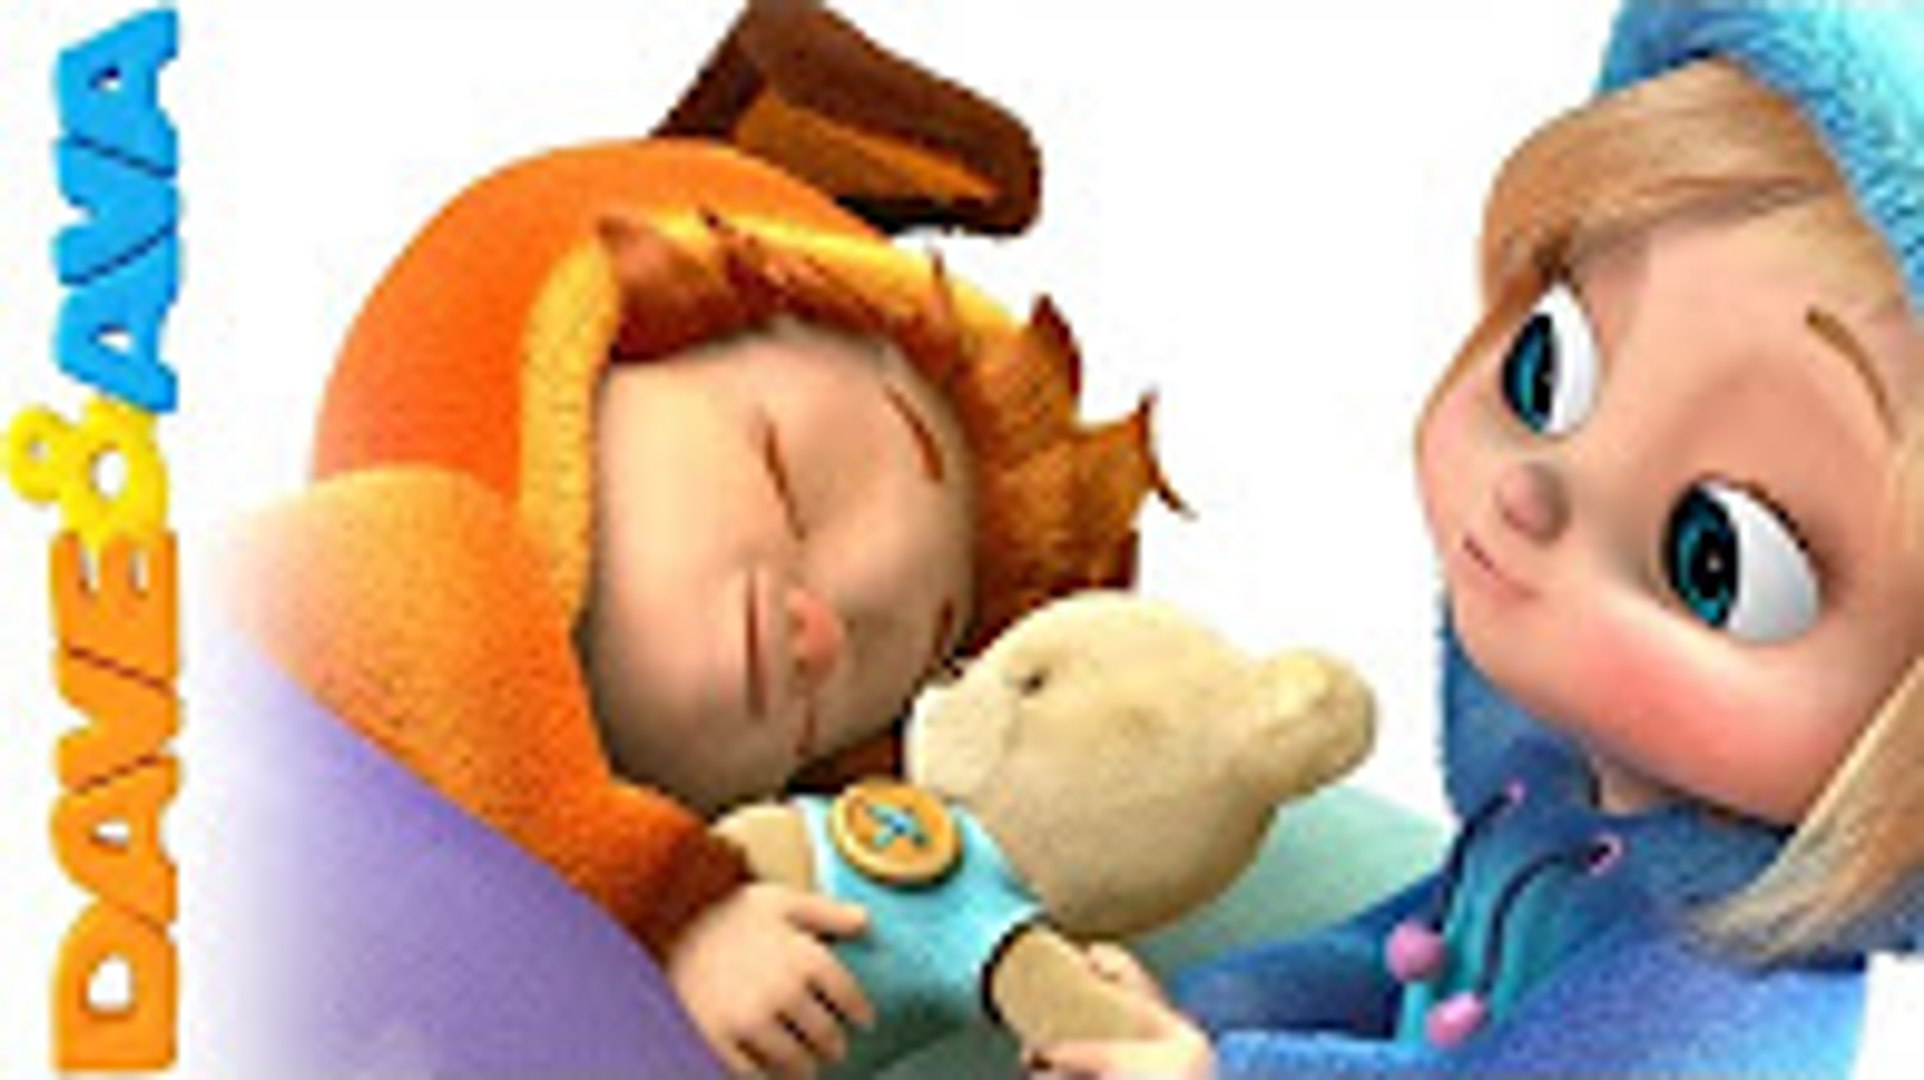 Are You Sleeping Brother John | Brother John |  Nursery Rhymes and Baby songs from Dave and Ava